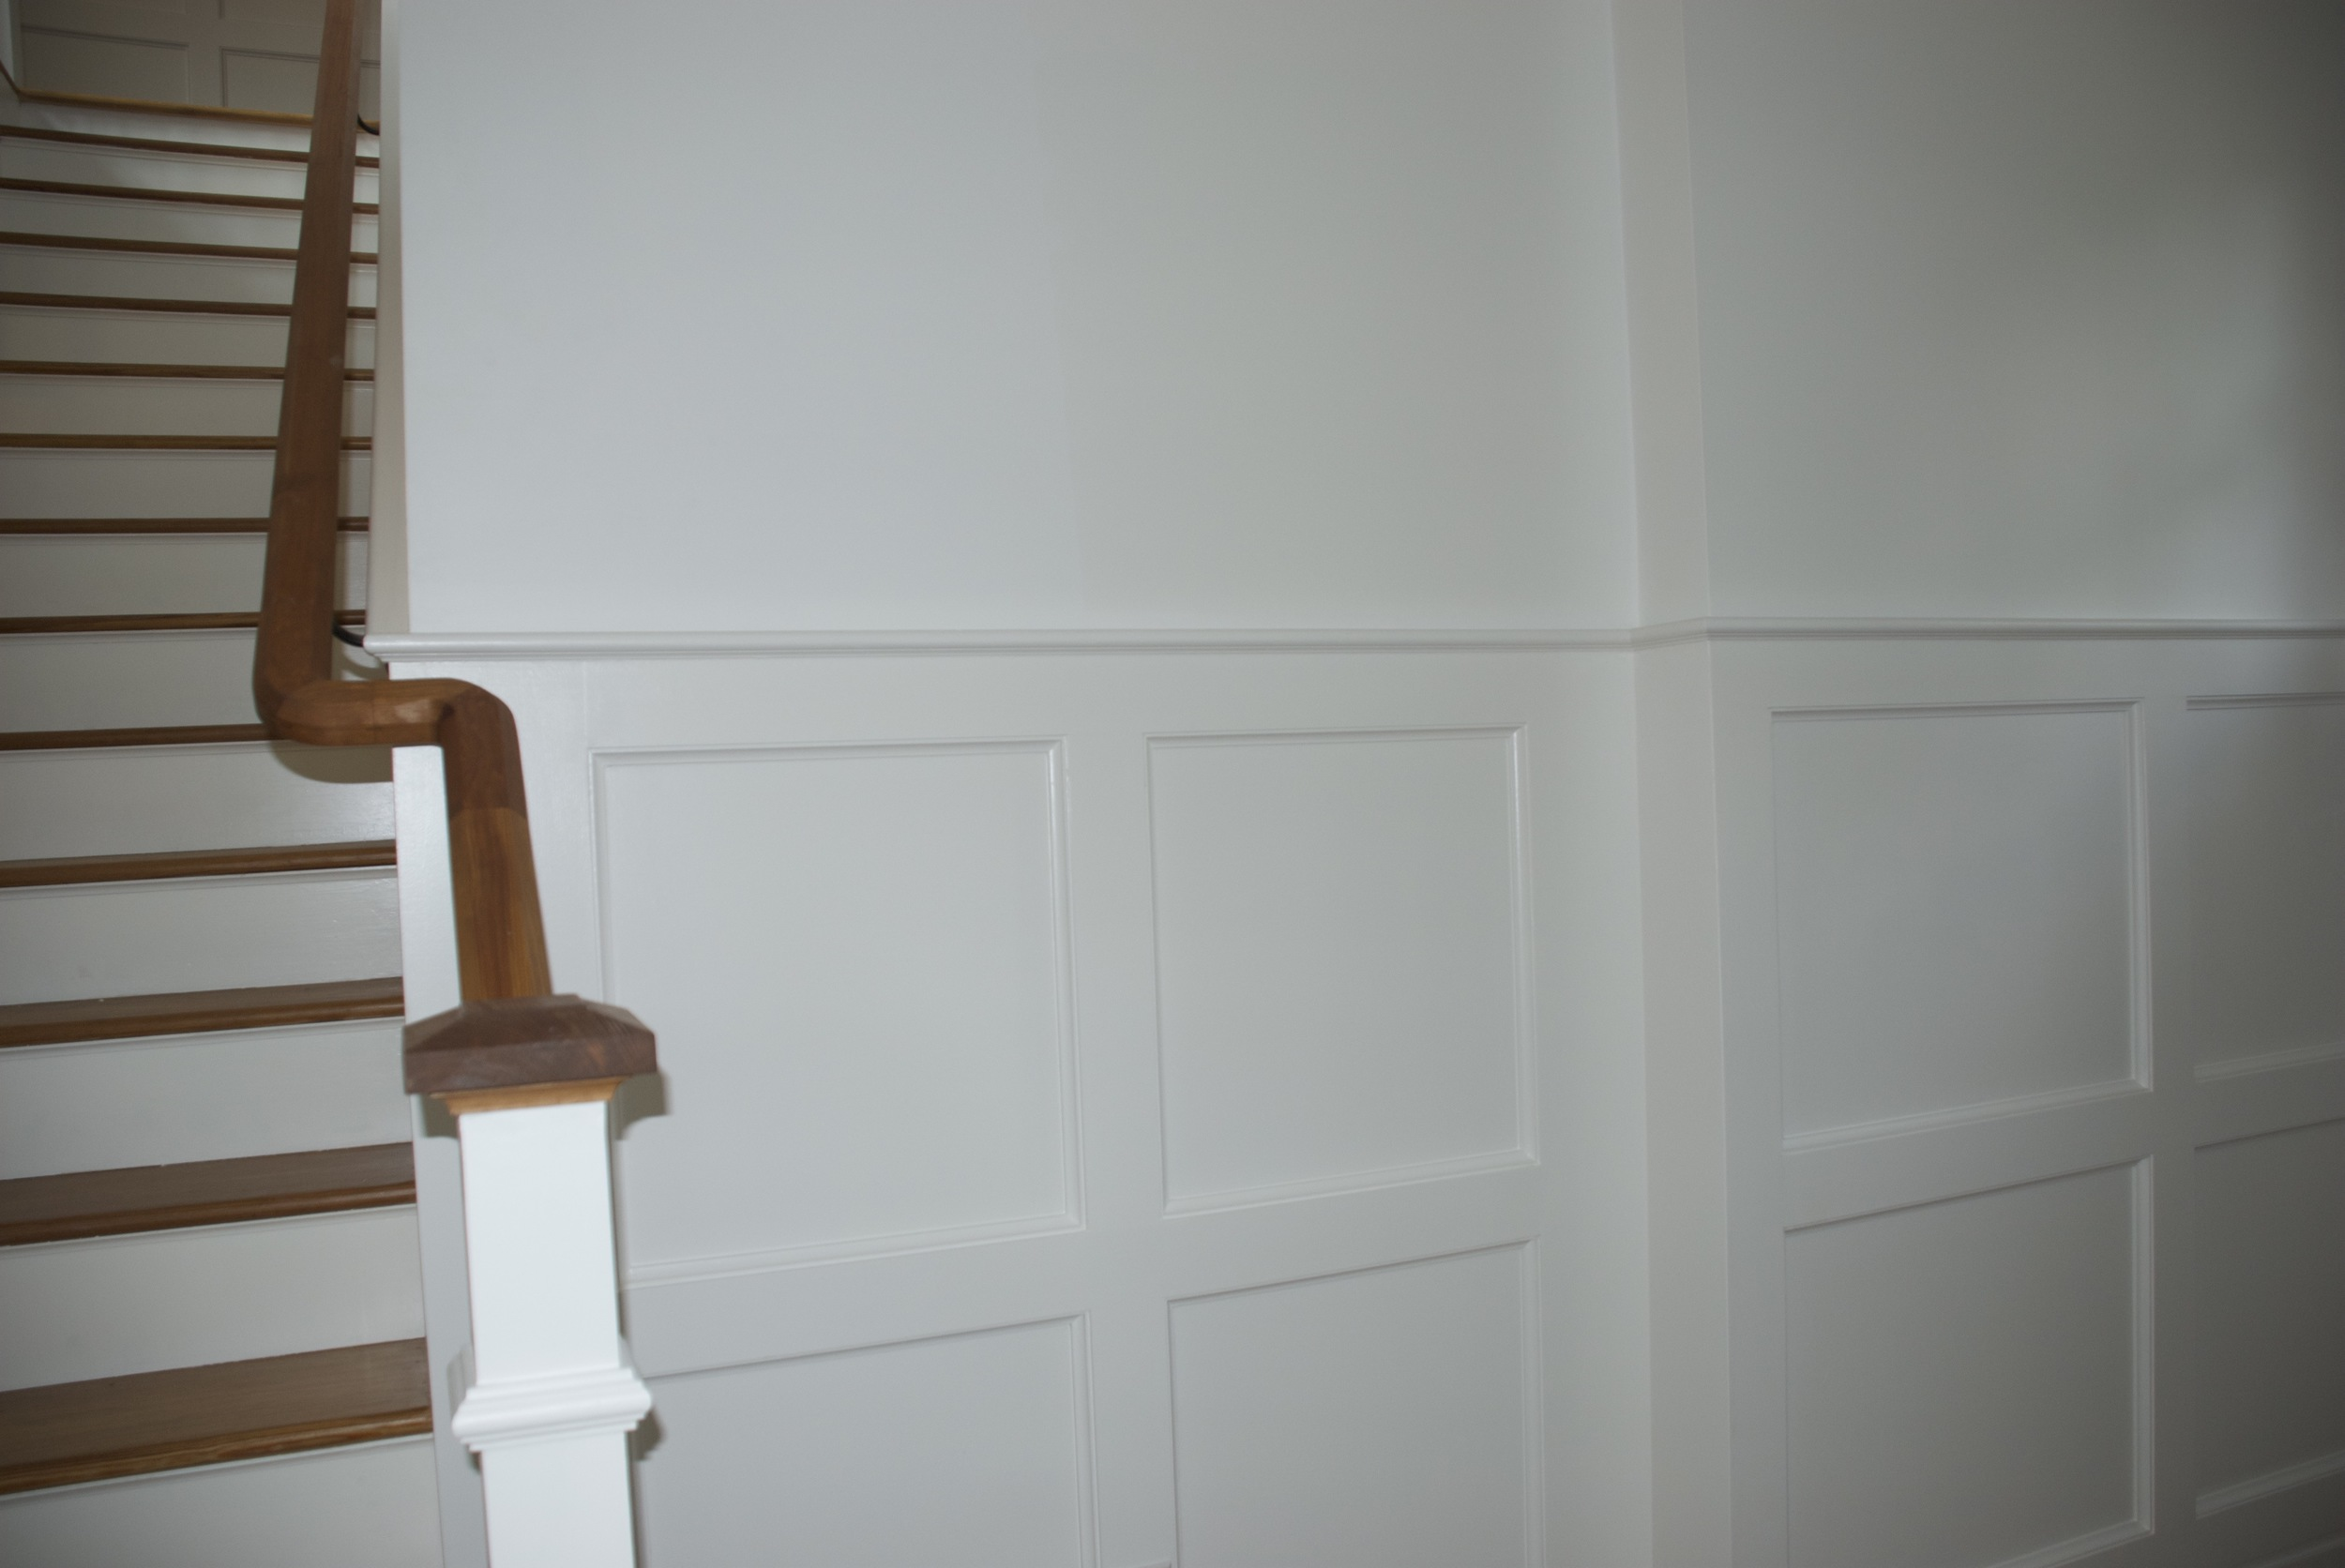 The new wainscot paneling  Raji RM  designed for the main entry